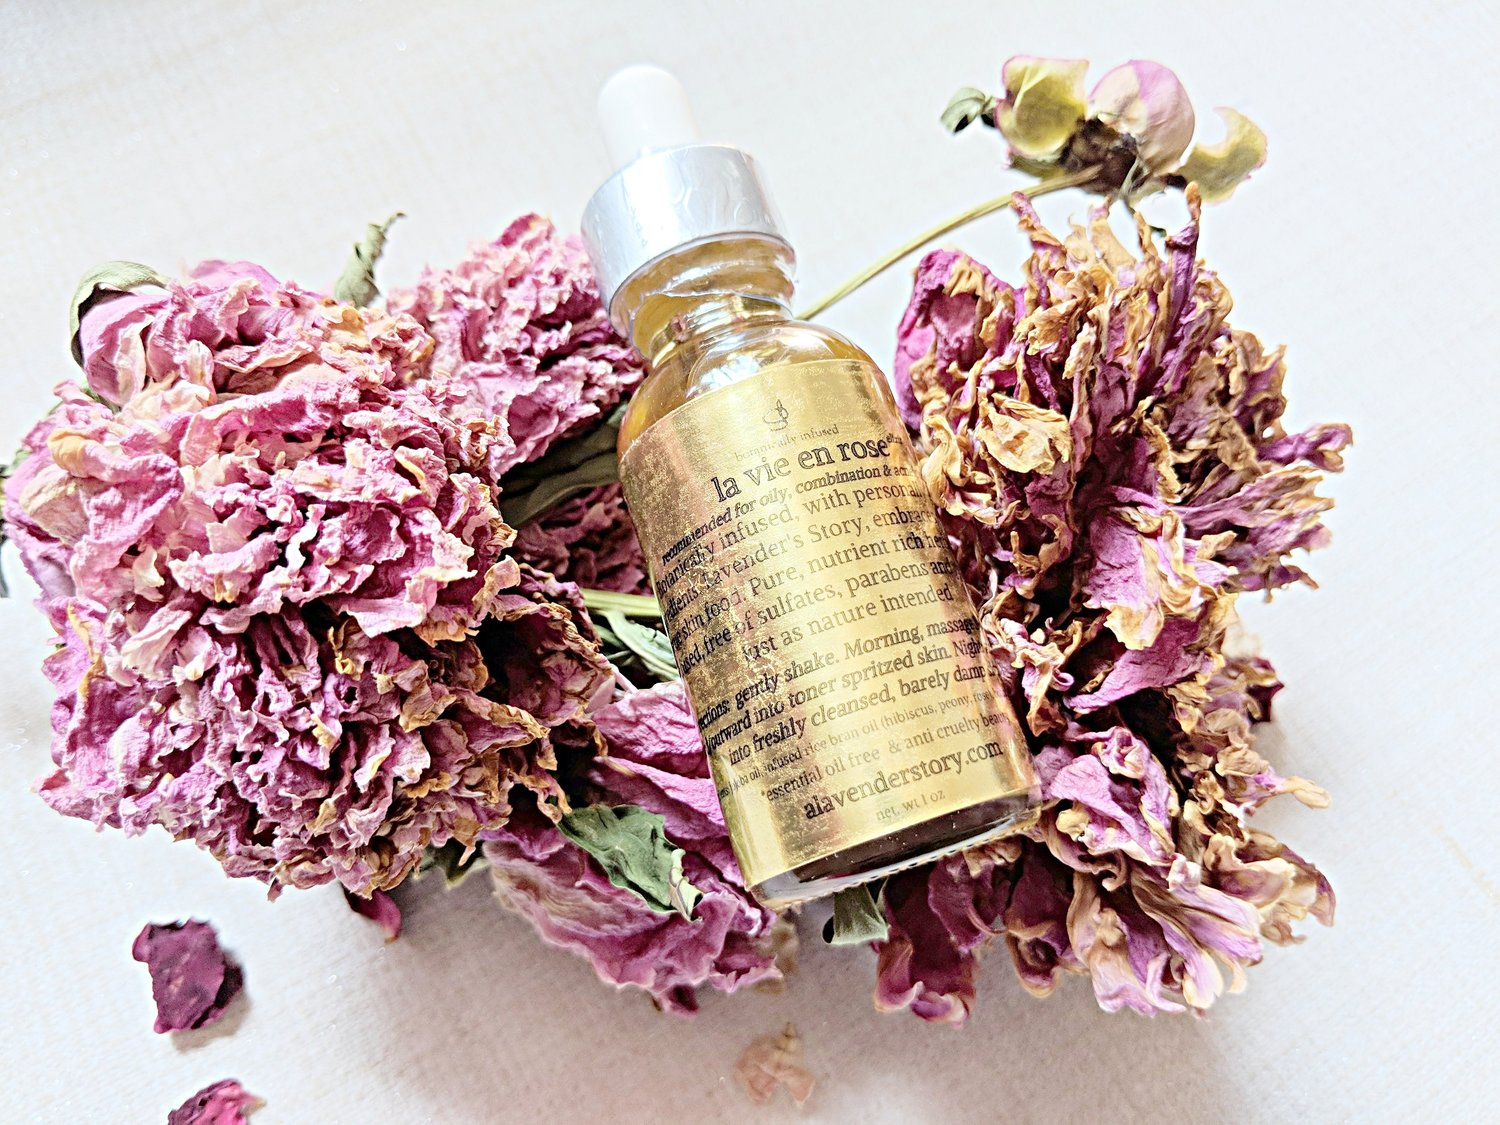 Lavender's Story - Lavender's Story is a tiny body and beauty brand that is local to Chicago. It's not hard to see that ingredients come from fresh from an urban garden when you can literally stop and smell the roses in her products. If that didn't win you over, since the brand was created in memory of a loved one who succumbed to cancer, Lavender's Story often donates part of its proceeds to charity.